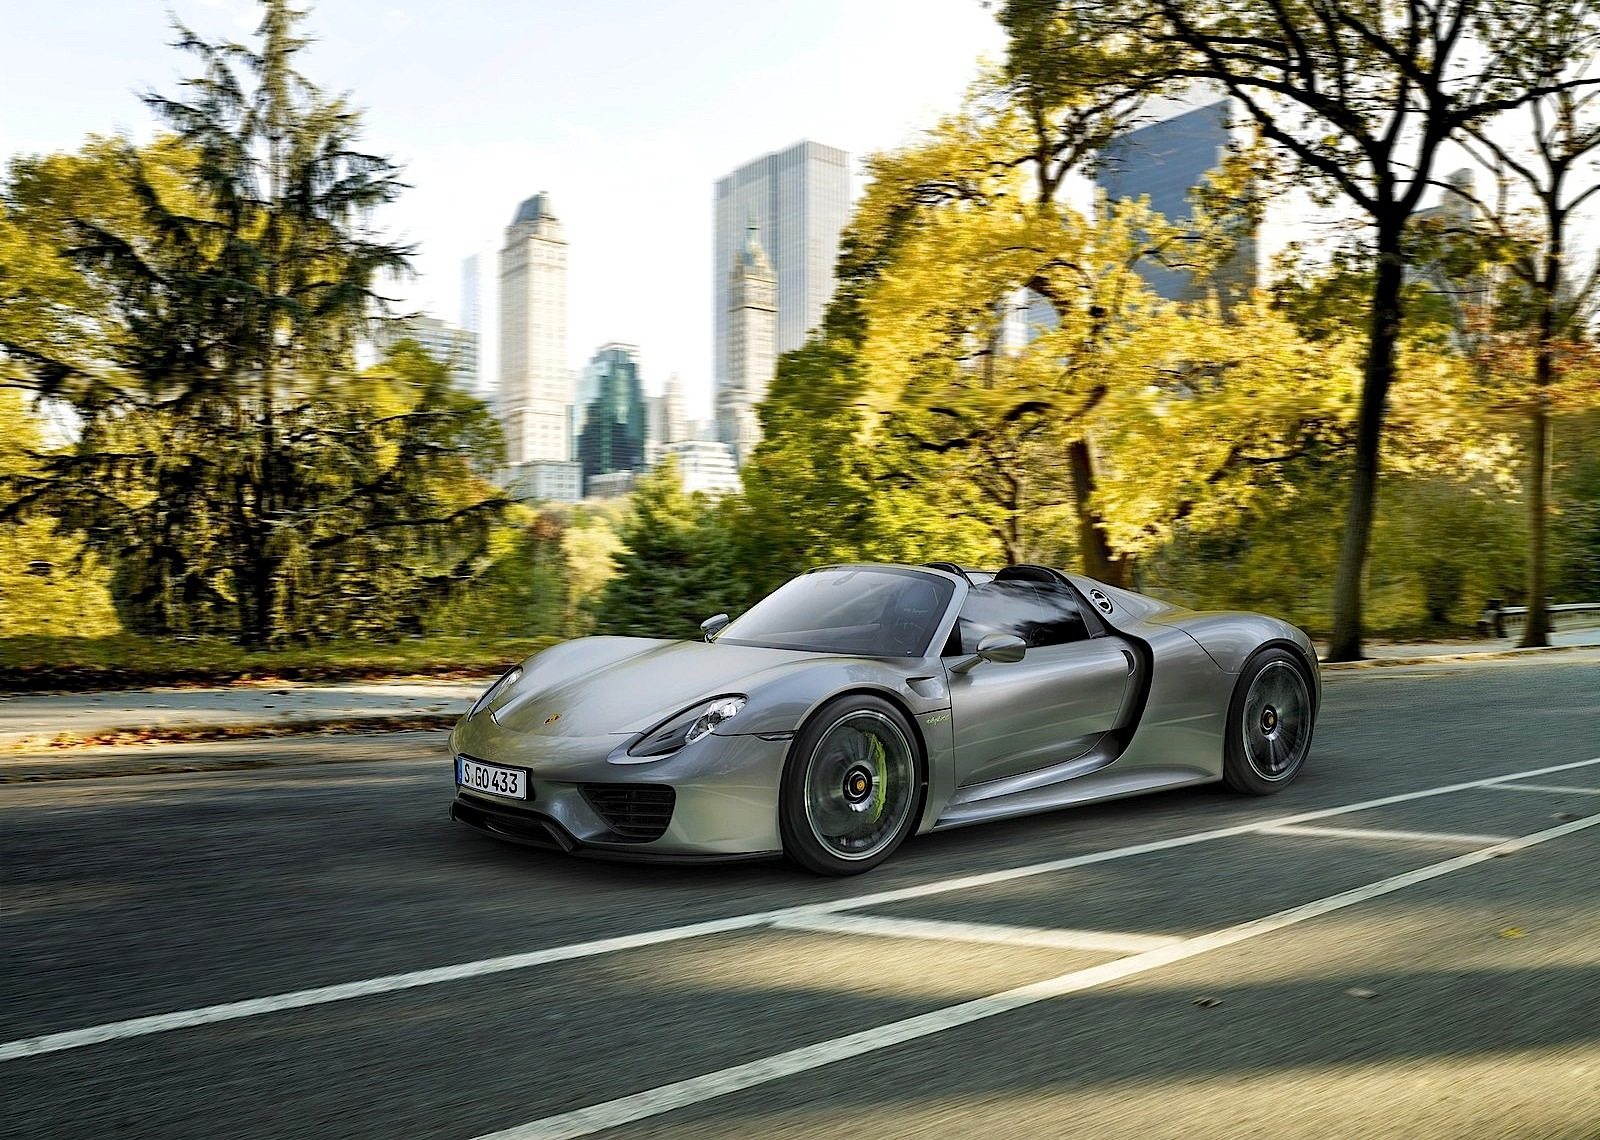 Porsche Issues Precautionary Recall Of 918 Spyder